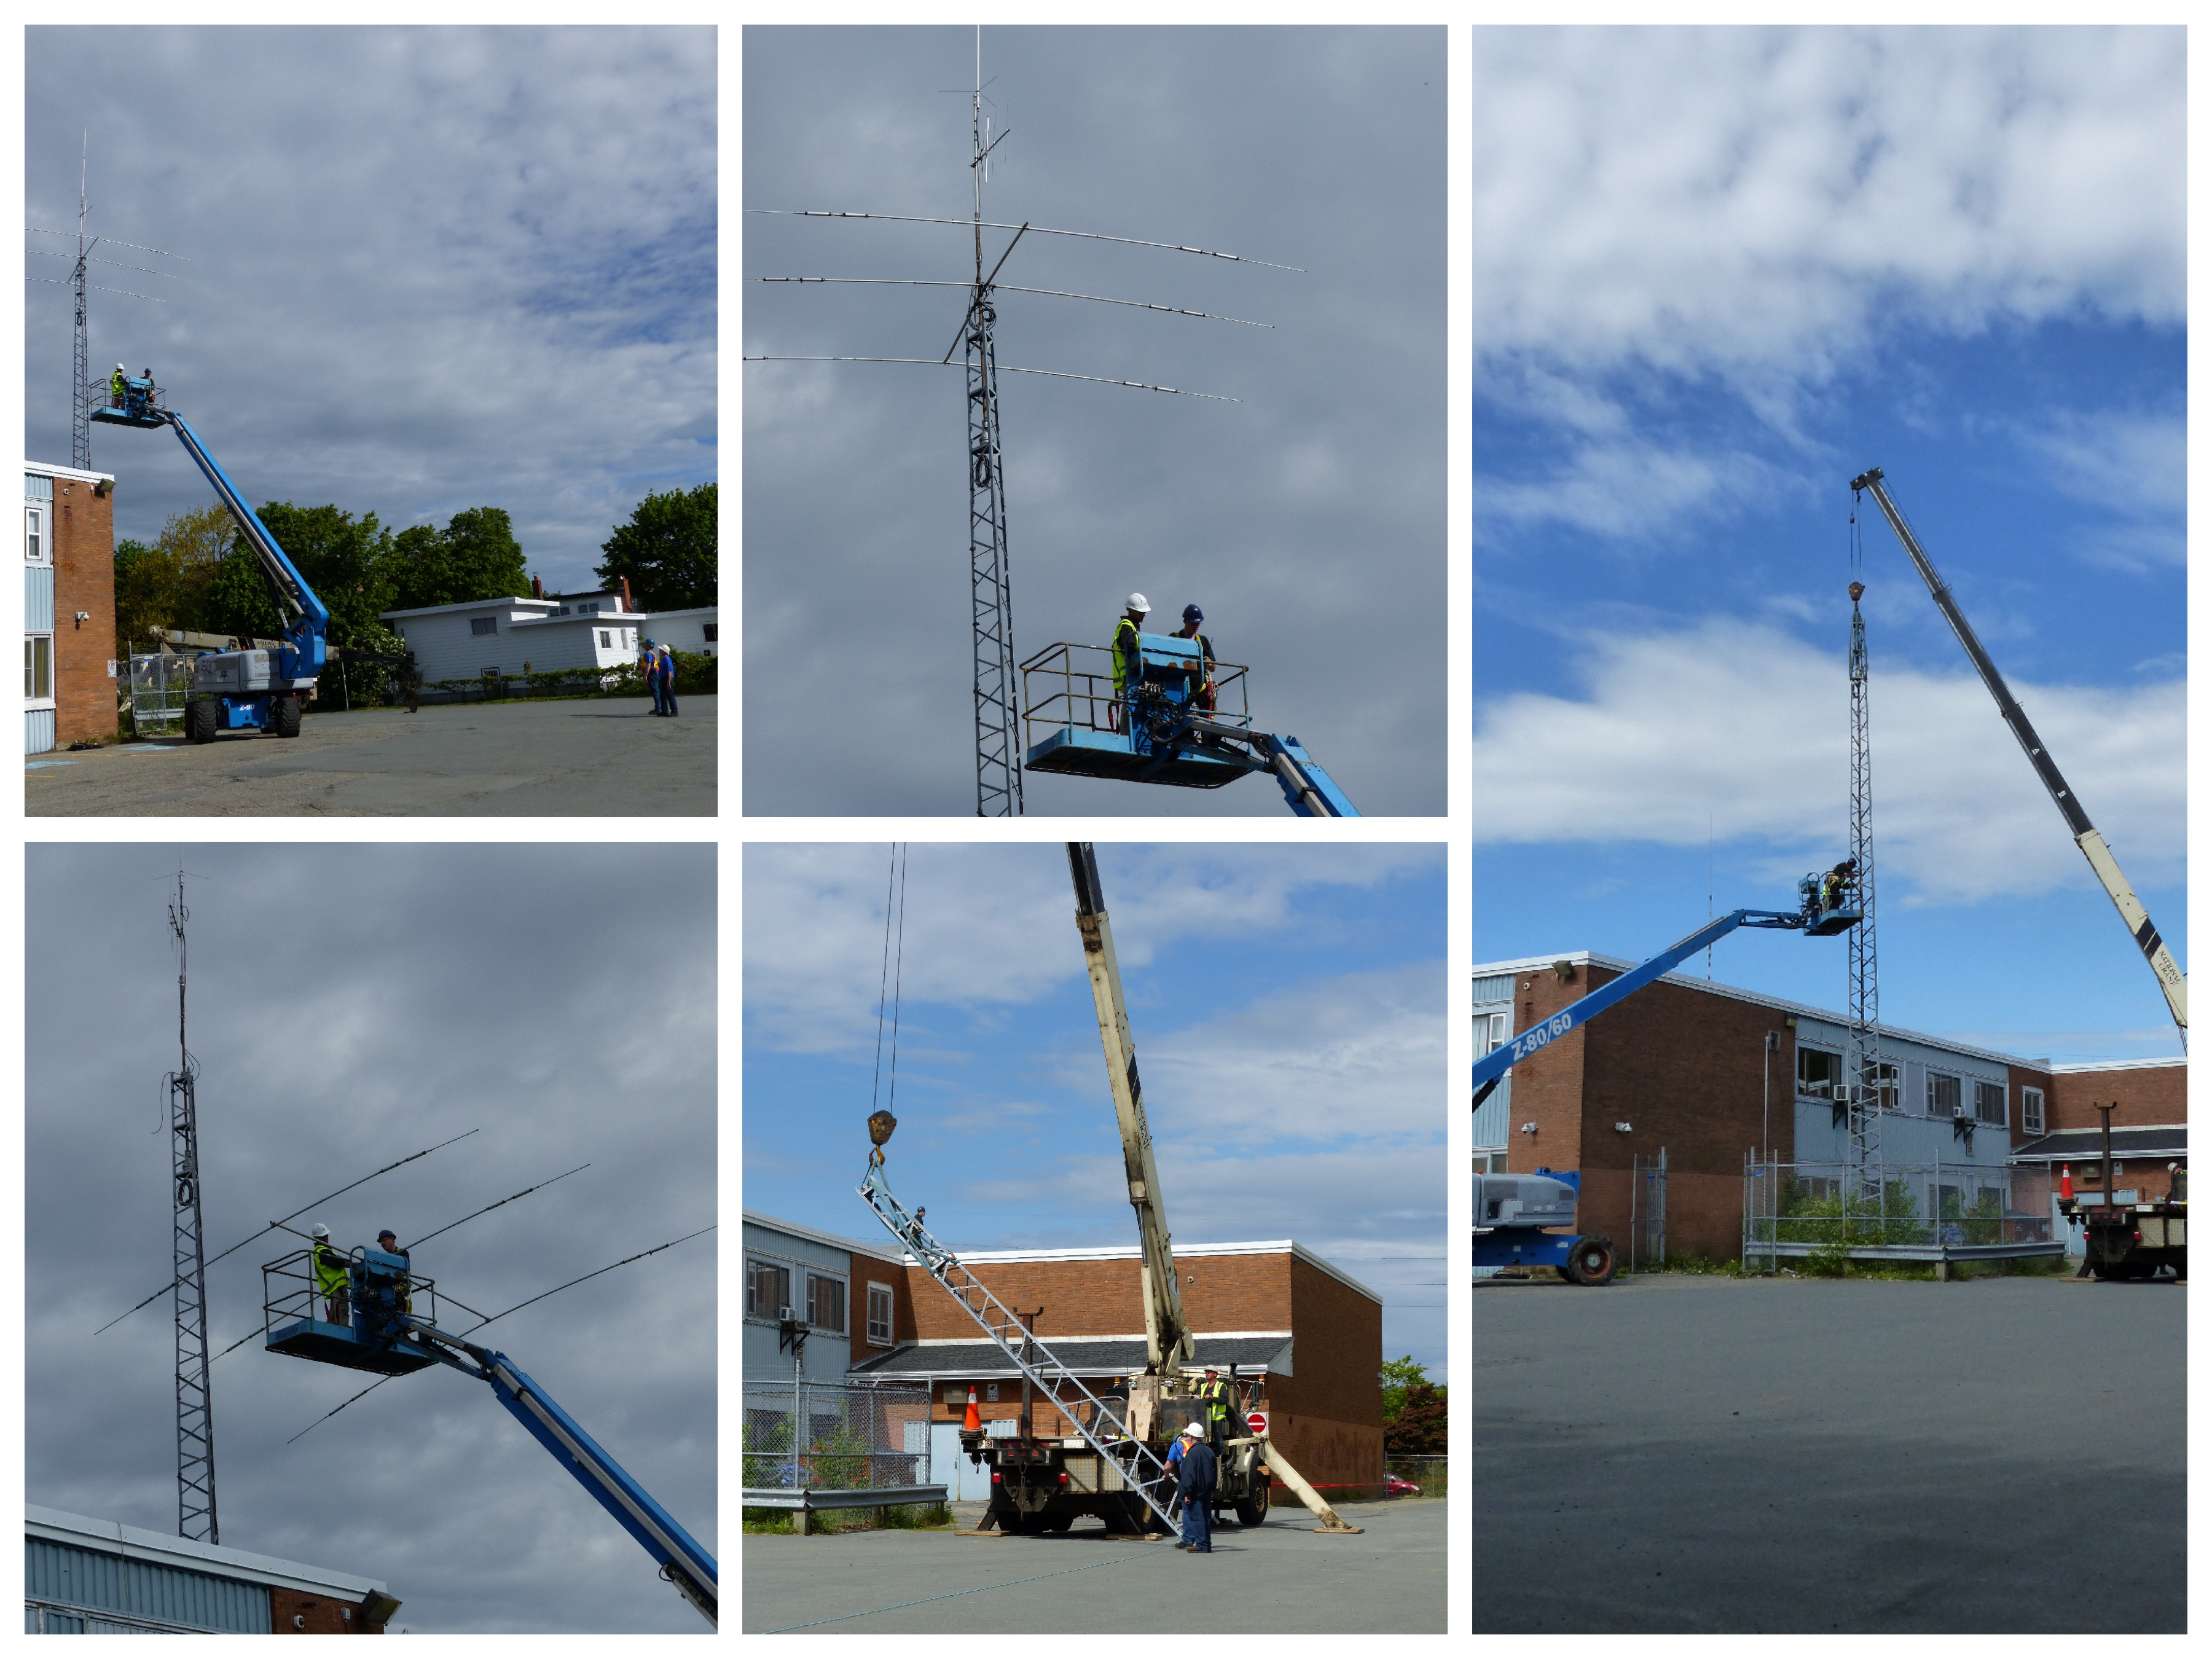 HARC Tower move to station 50 image 2